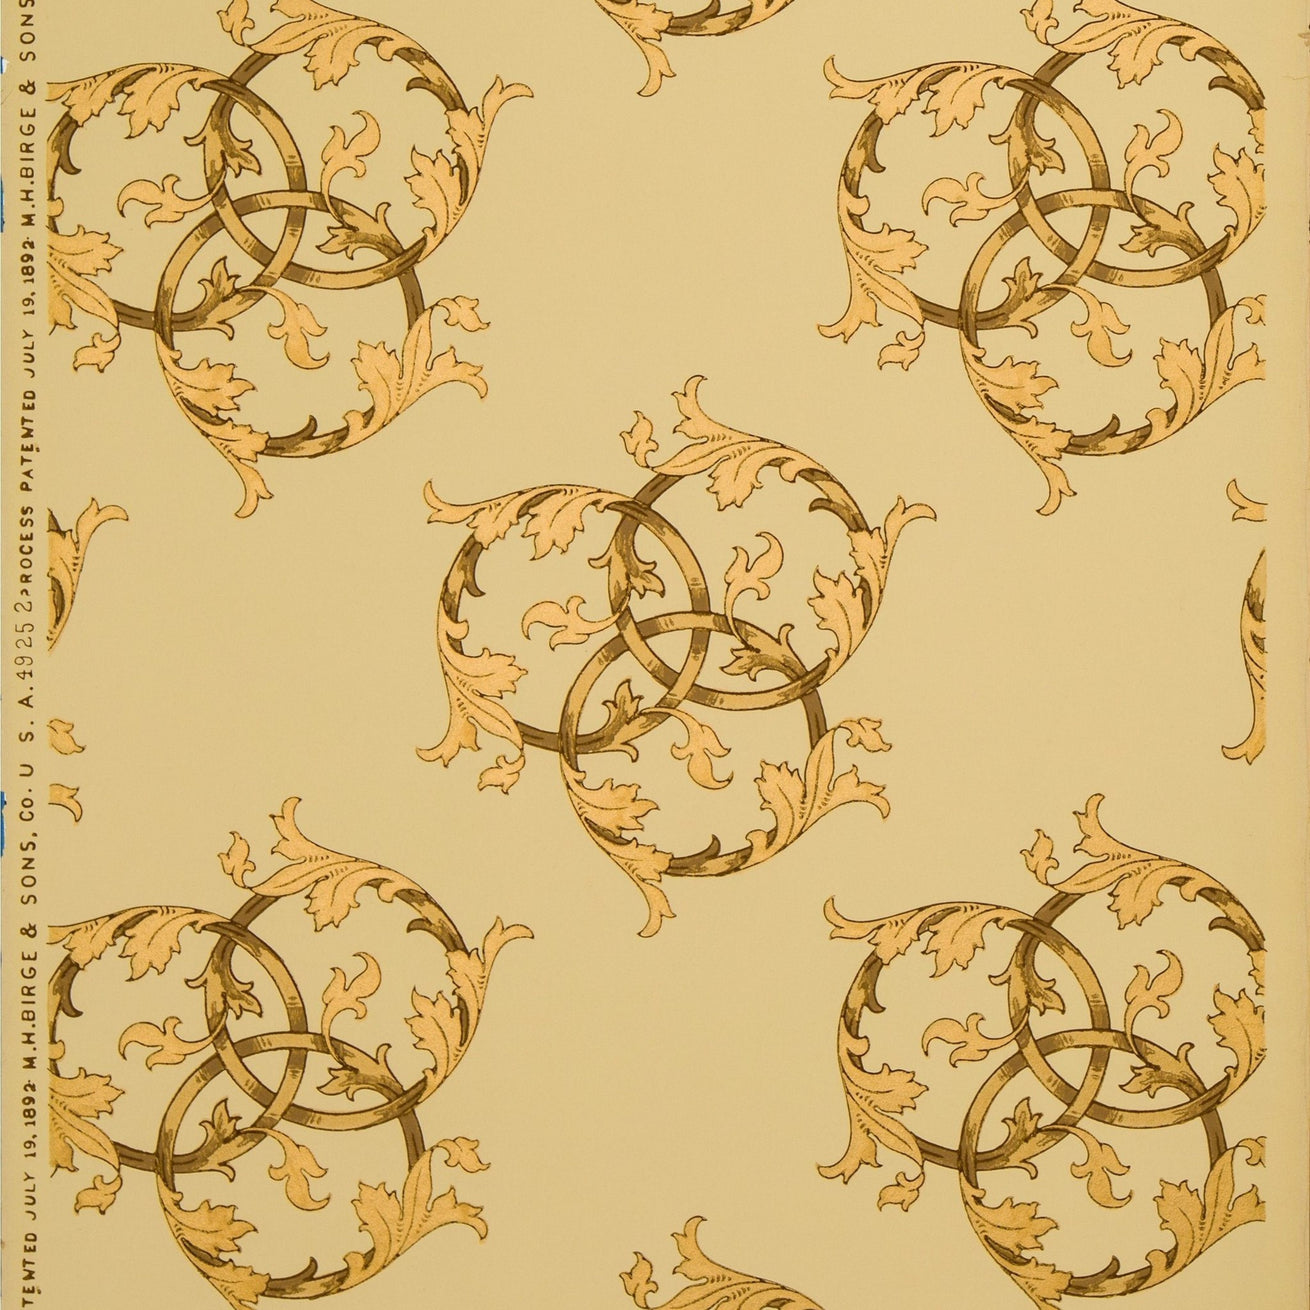 Ceiling with Gilt Interlocking Circles - Antique Wallpaper Remnant